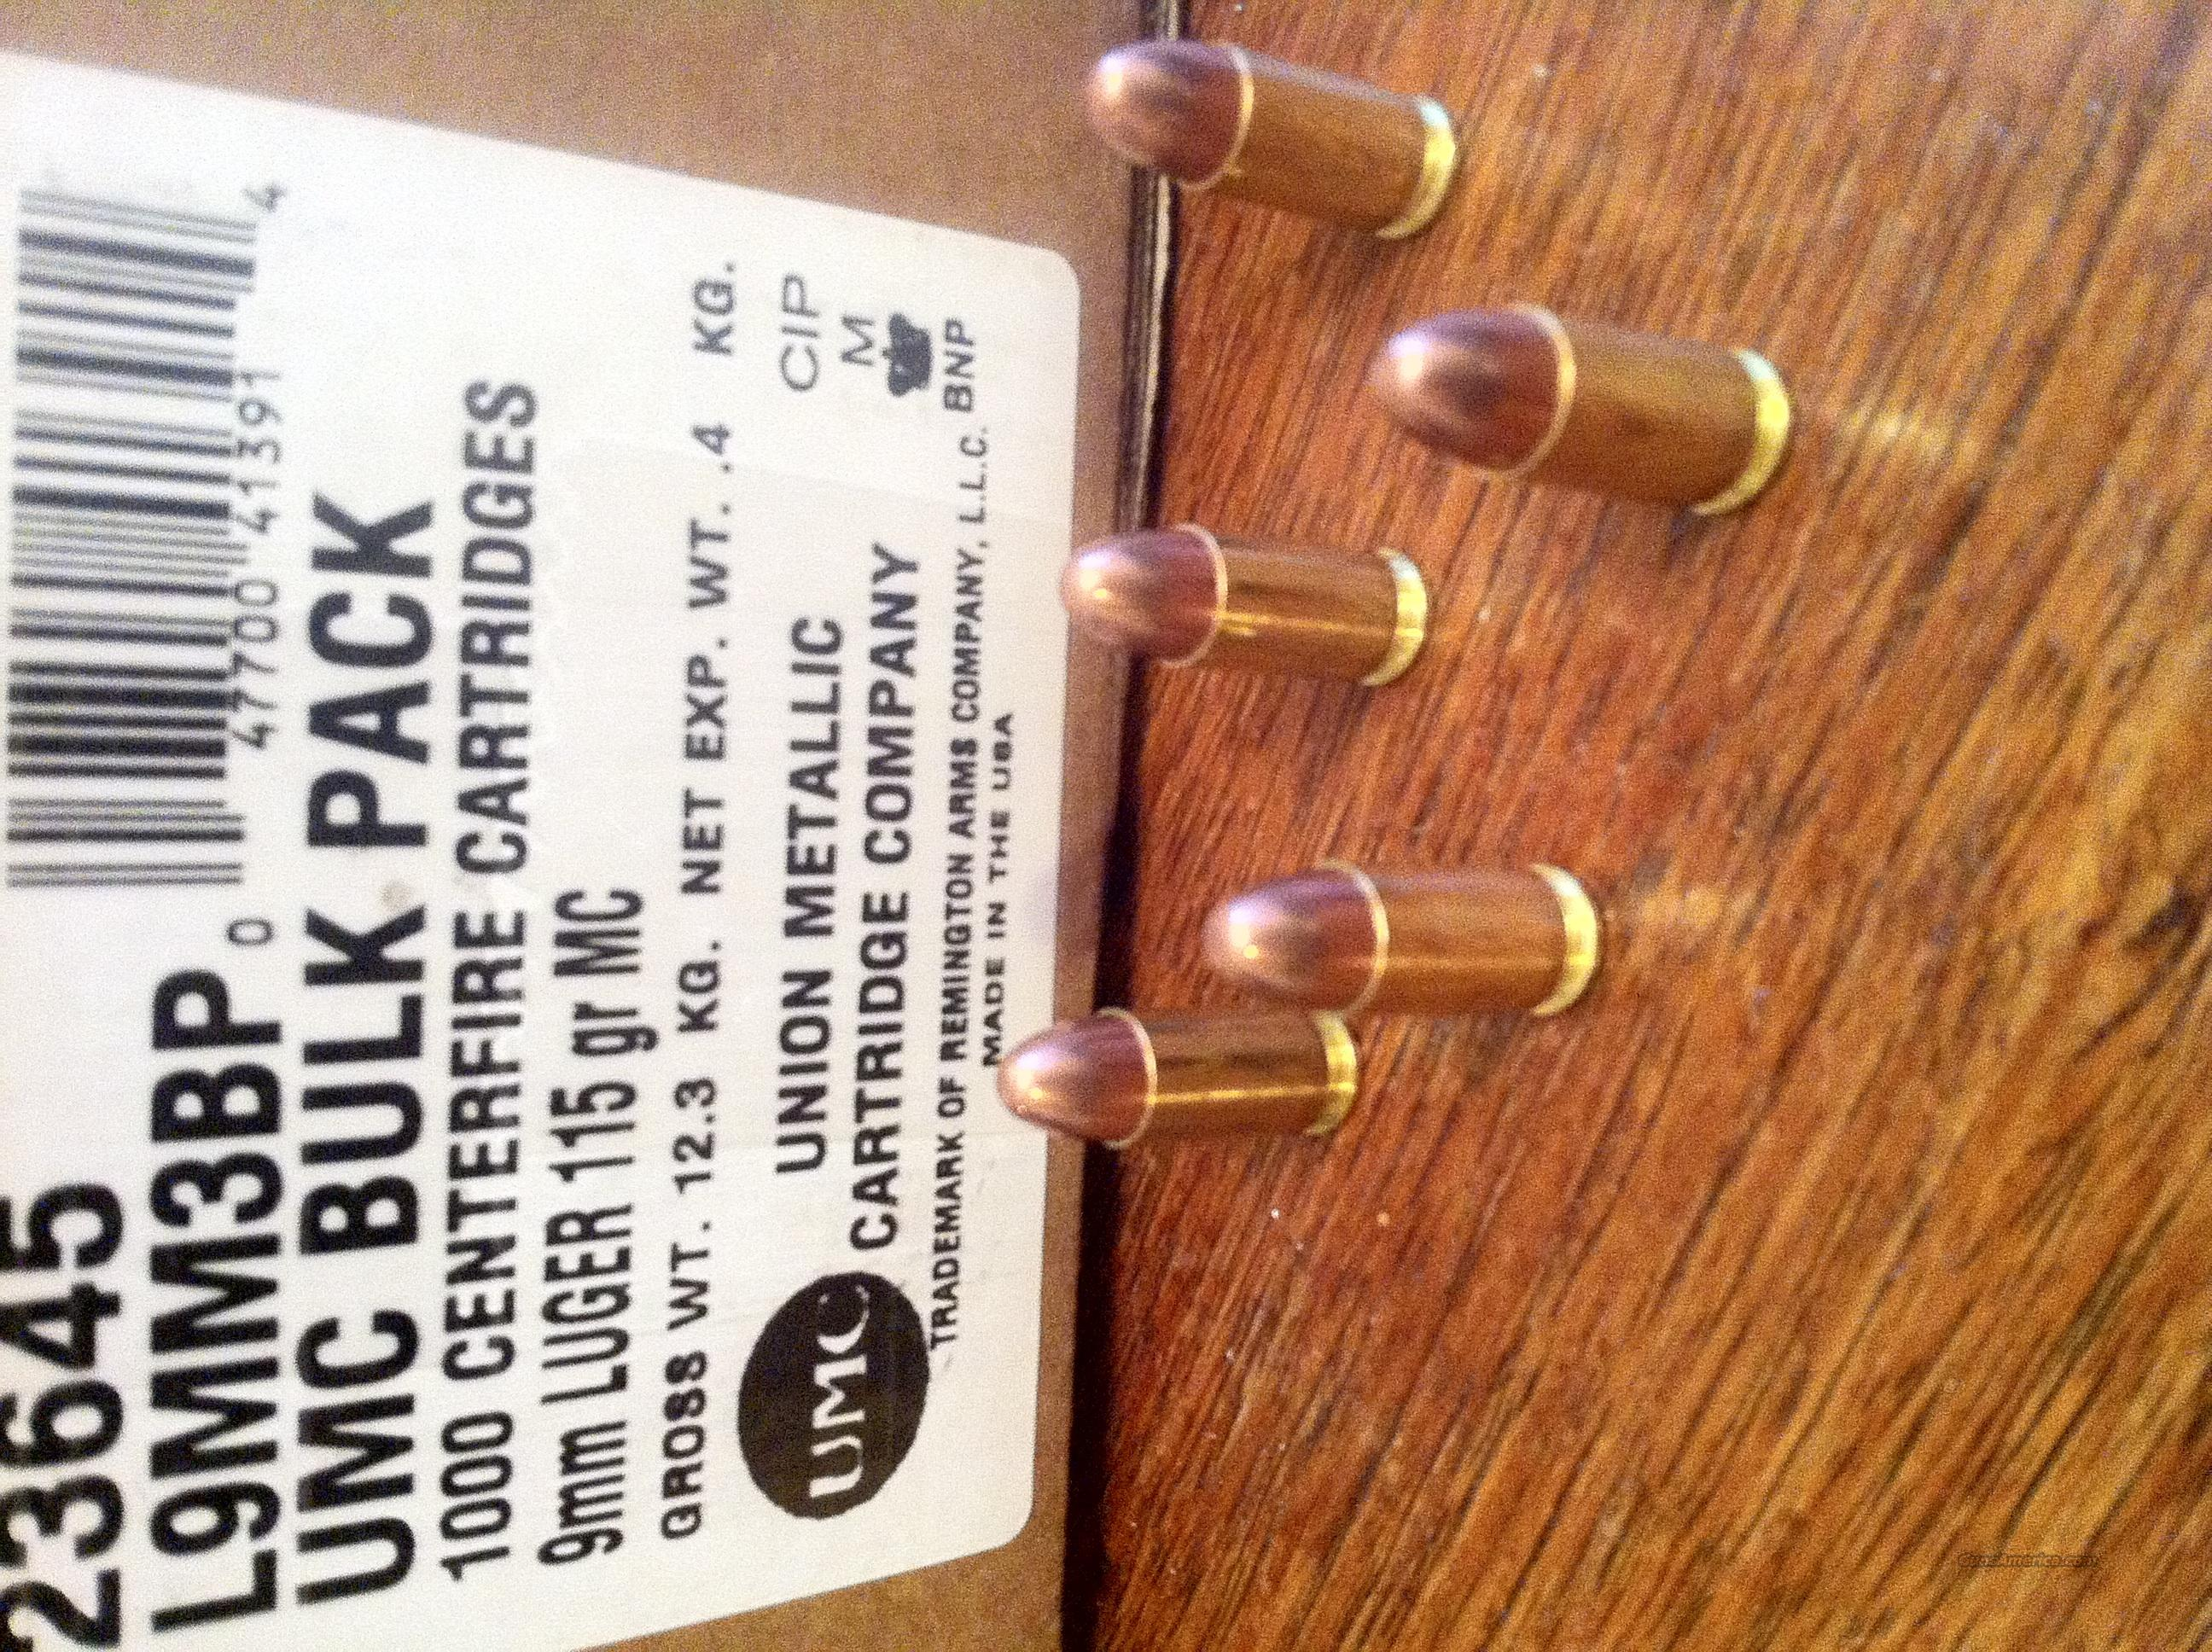 9mm 1000 rounds!  Bulk Purchase 9 mm Remington 1000 Rounds   Non-Guns > Ammunition